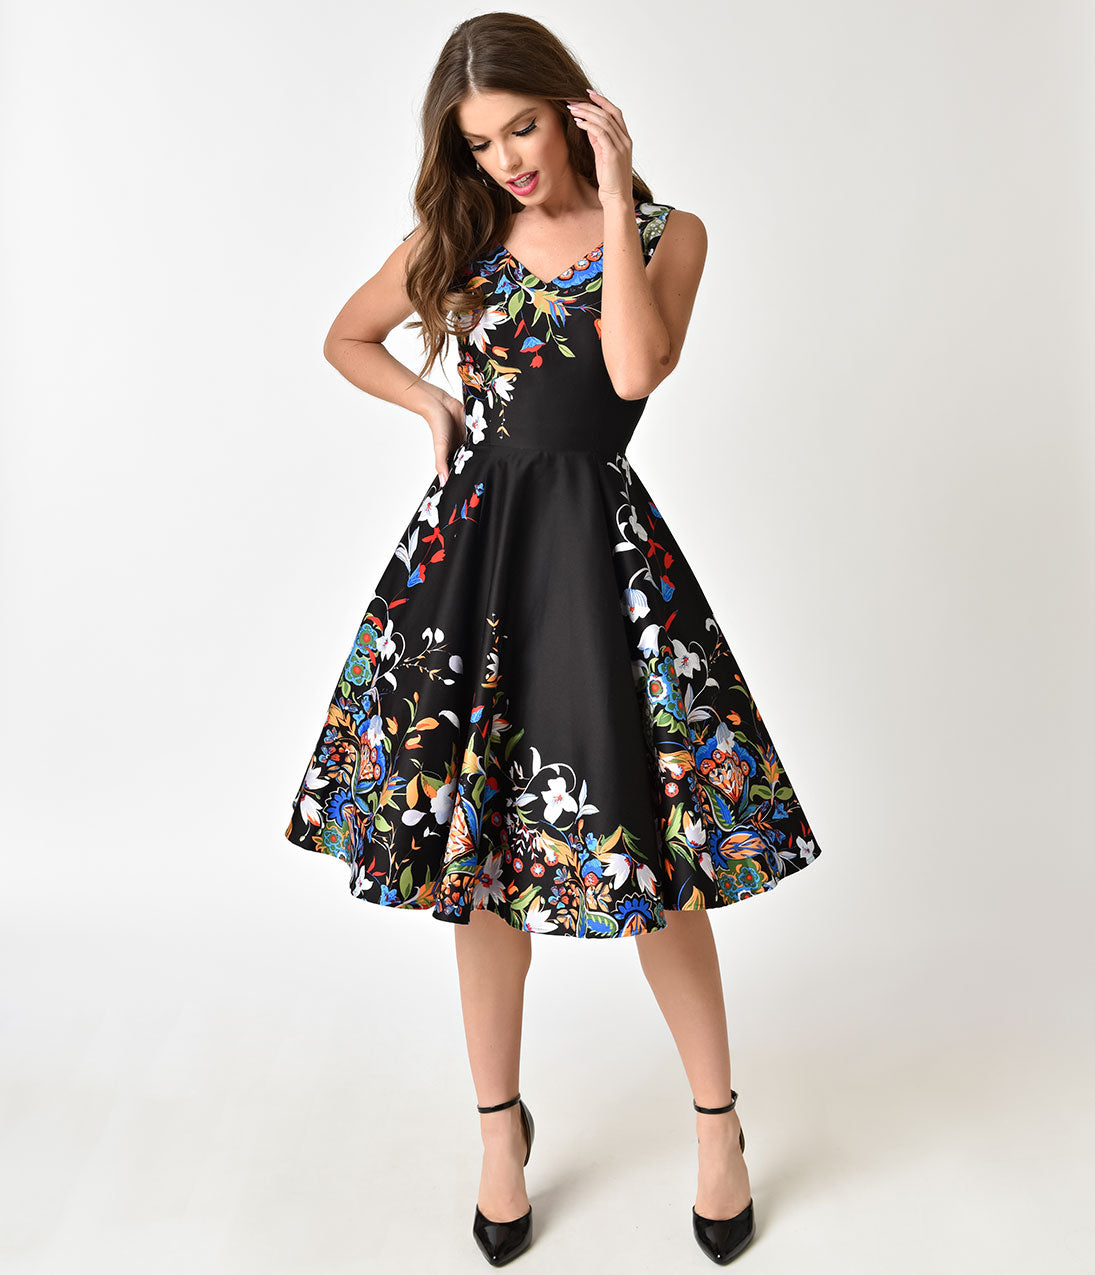 Vintage 50s Dresses: 8 Classic Retro Styles Black Double Border Floral Print Cotton Swing Dress $78.00 AT vintagedancer.com